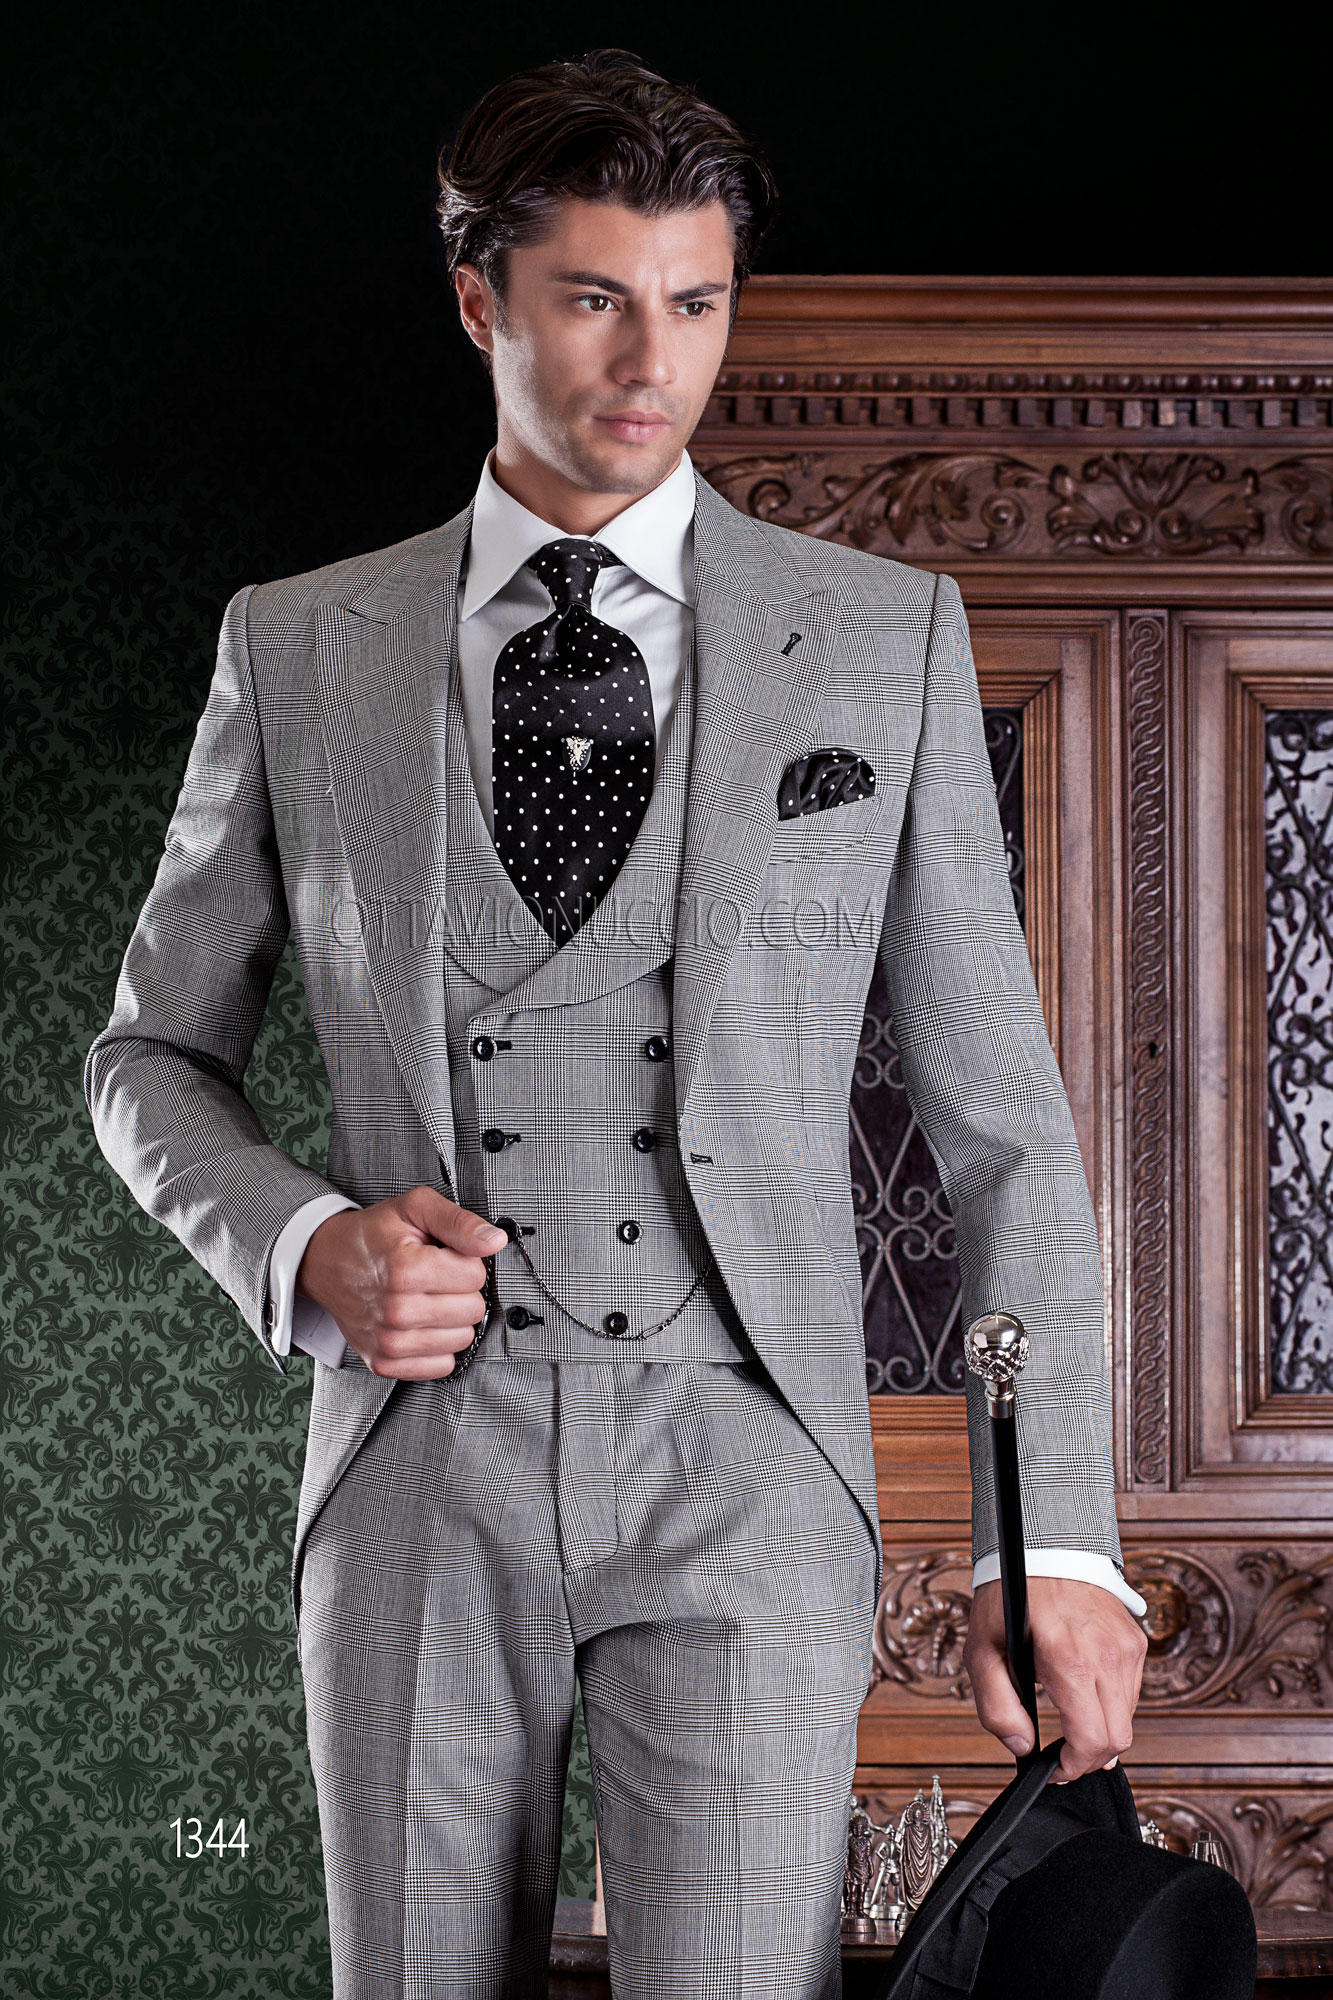 Prince of Wales peak lapel 3 piece Italian wedding suit